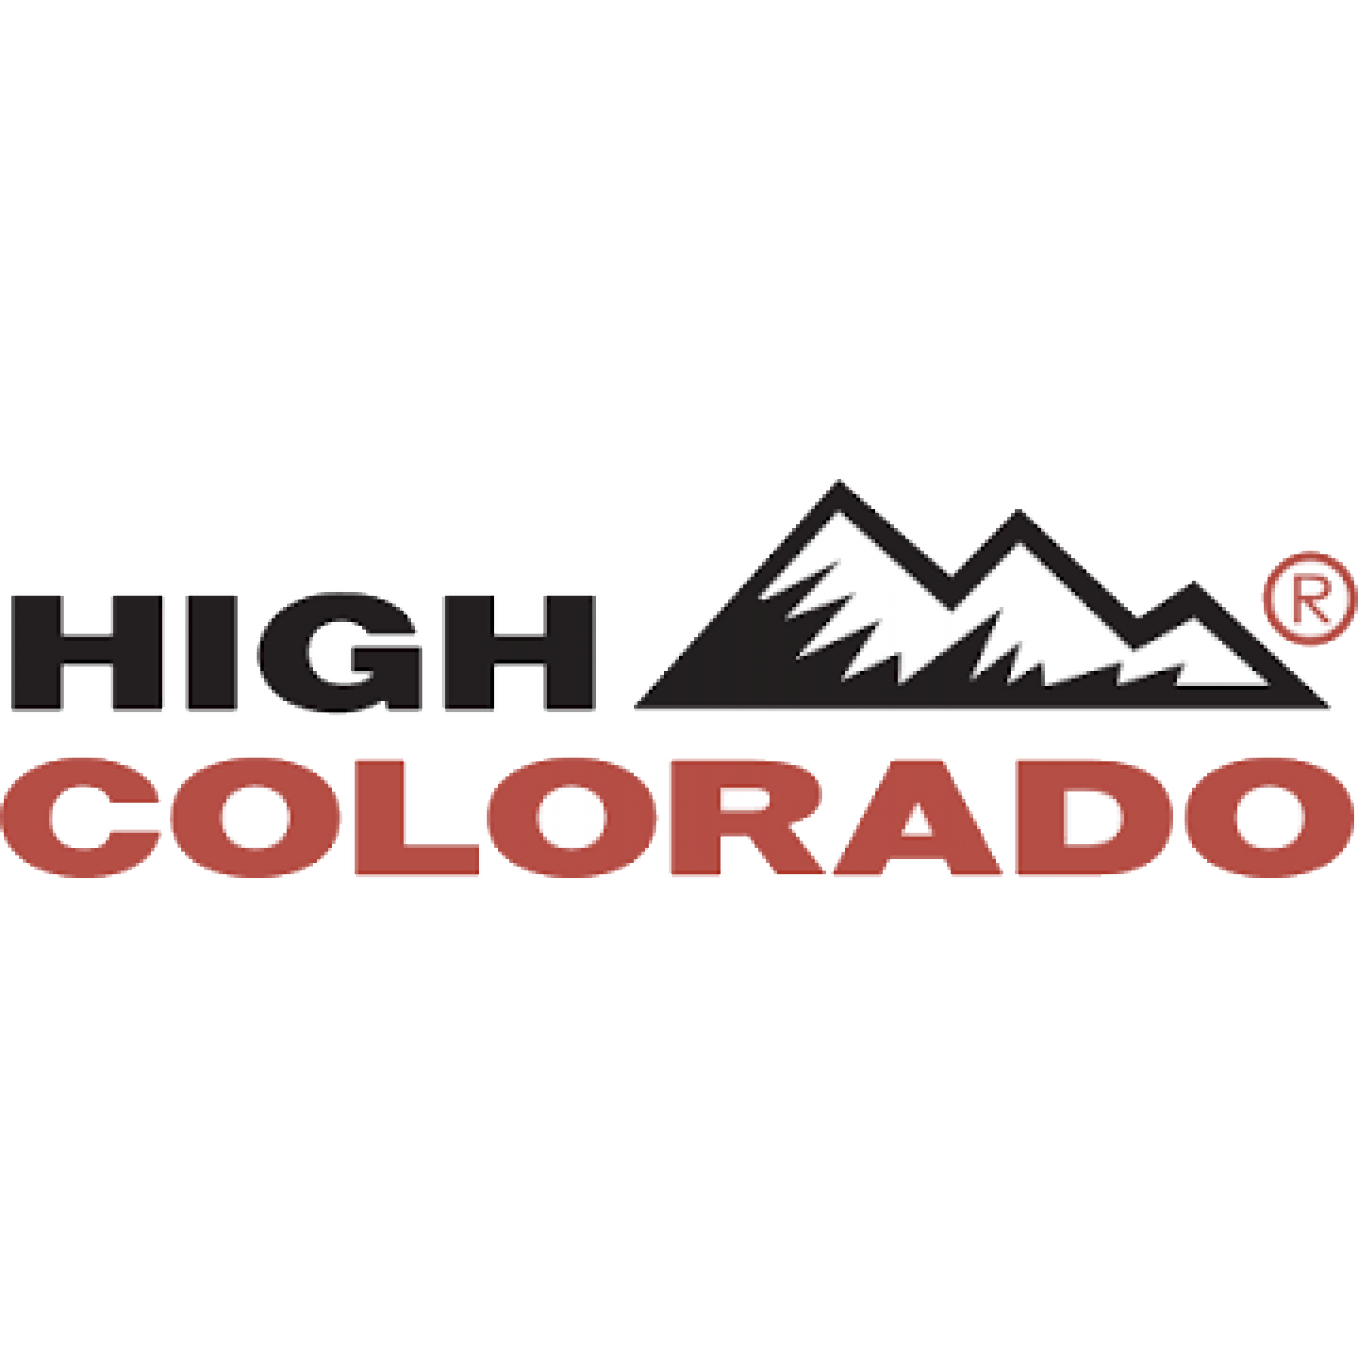 high colorado logo